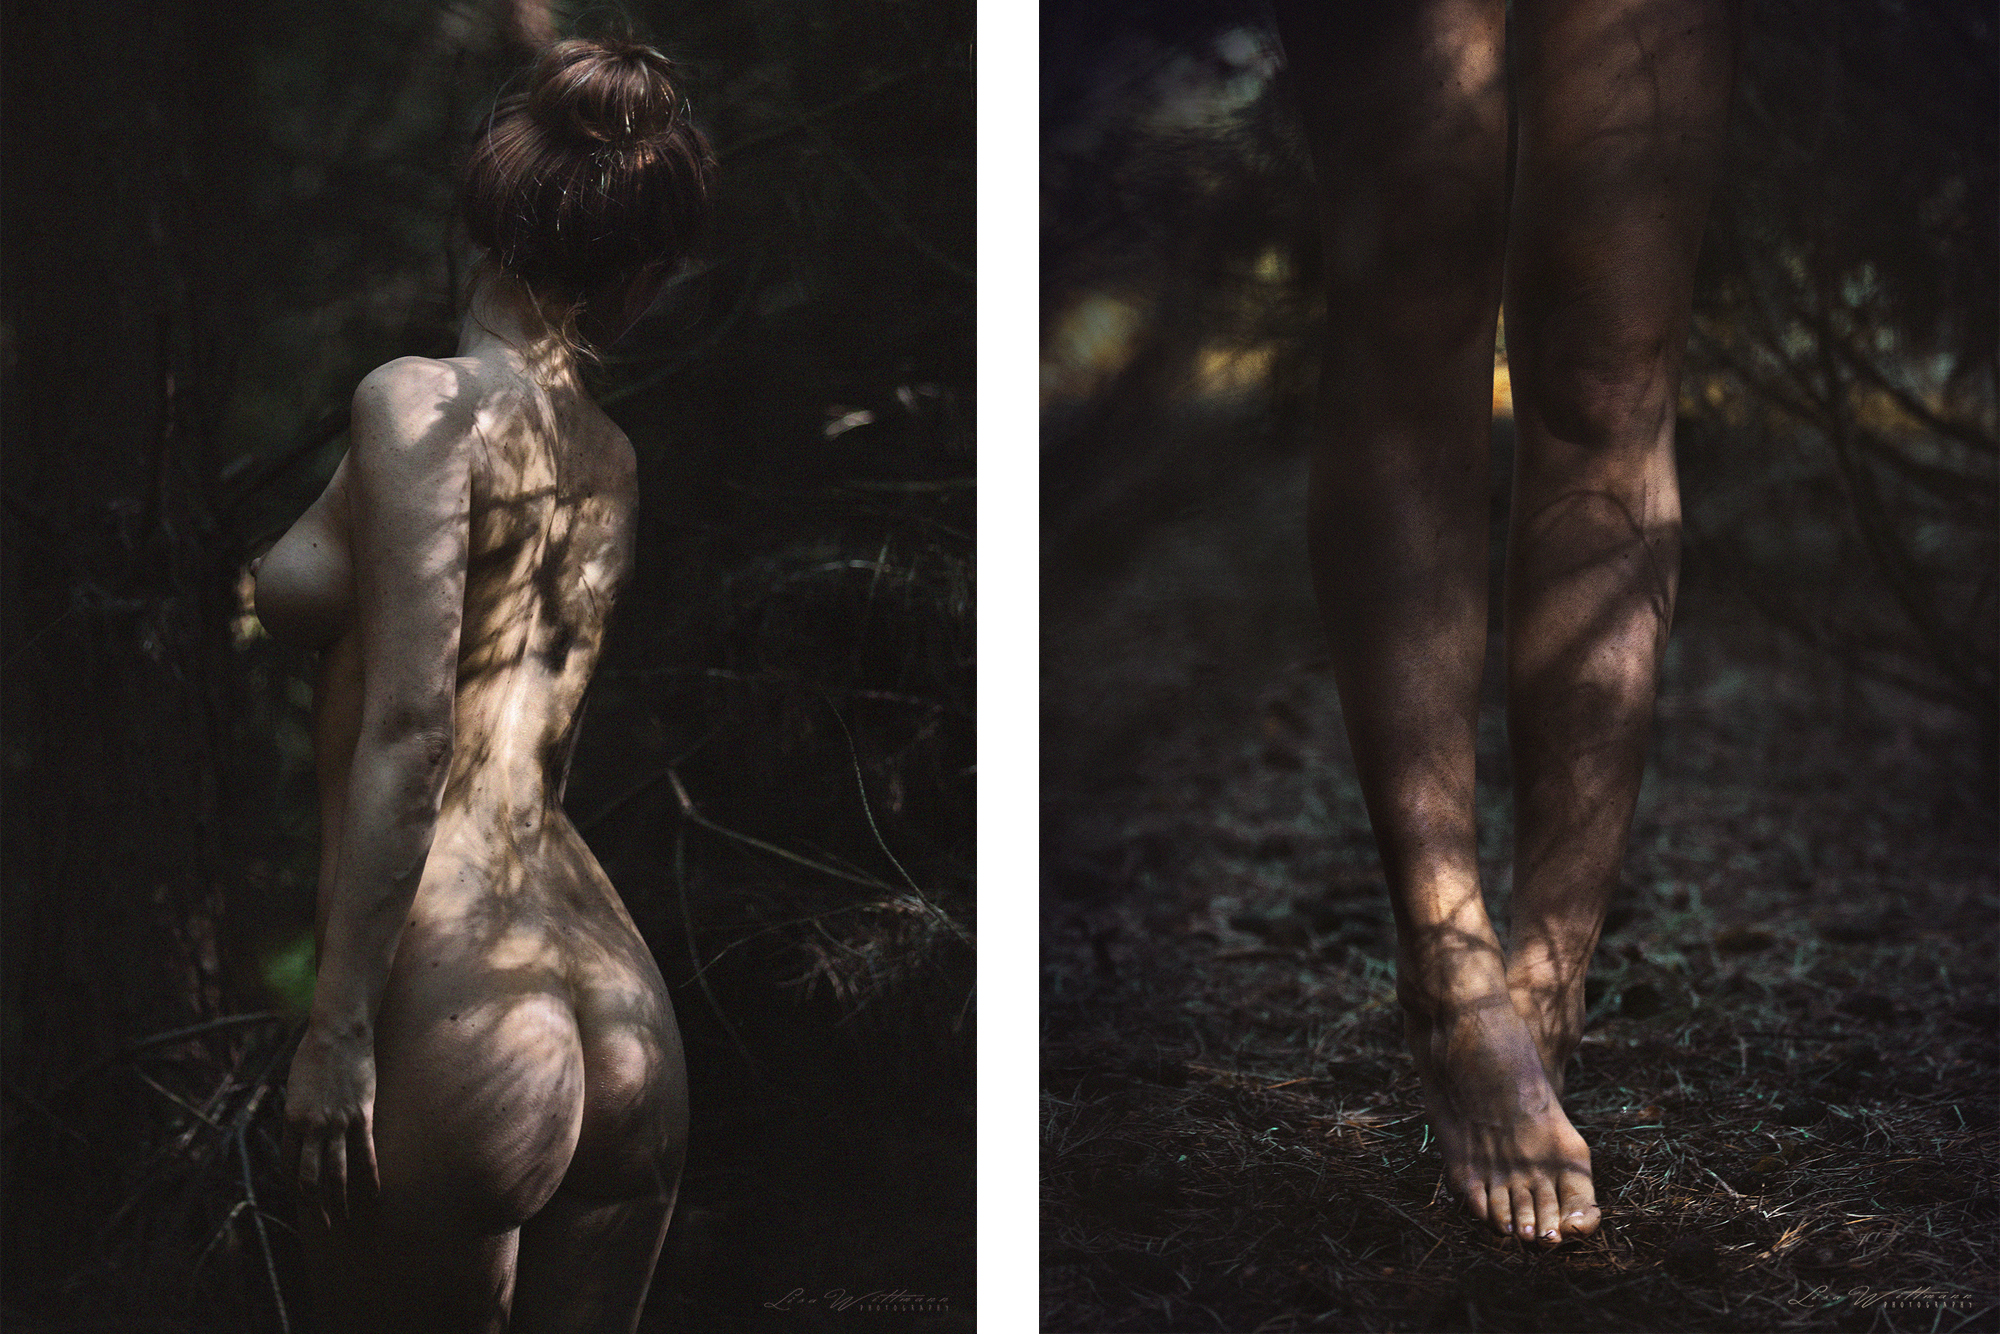 lisa_wittmann_photography_canon_forest_conifer_foot_sun_light_shadow_nude_legs_beautiful_woman_model_sensual_body_female_breast_stomach_legs_feet_steps